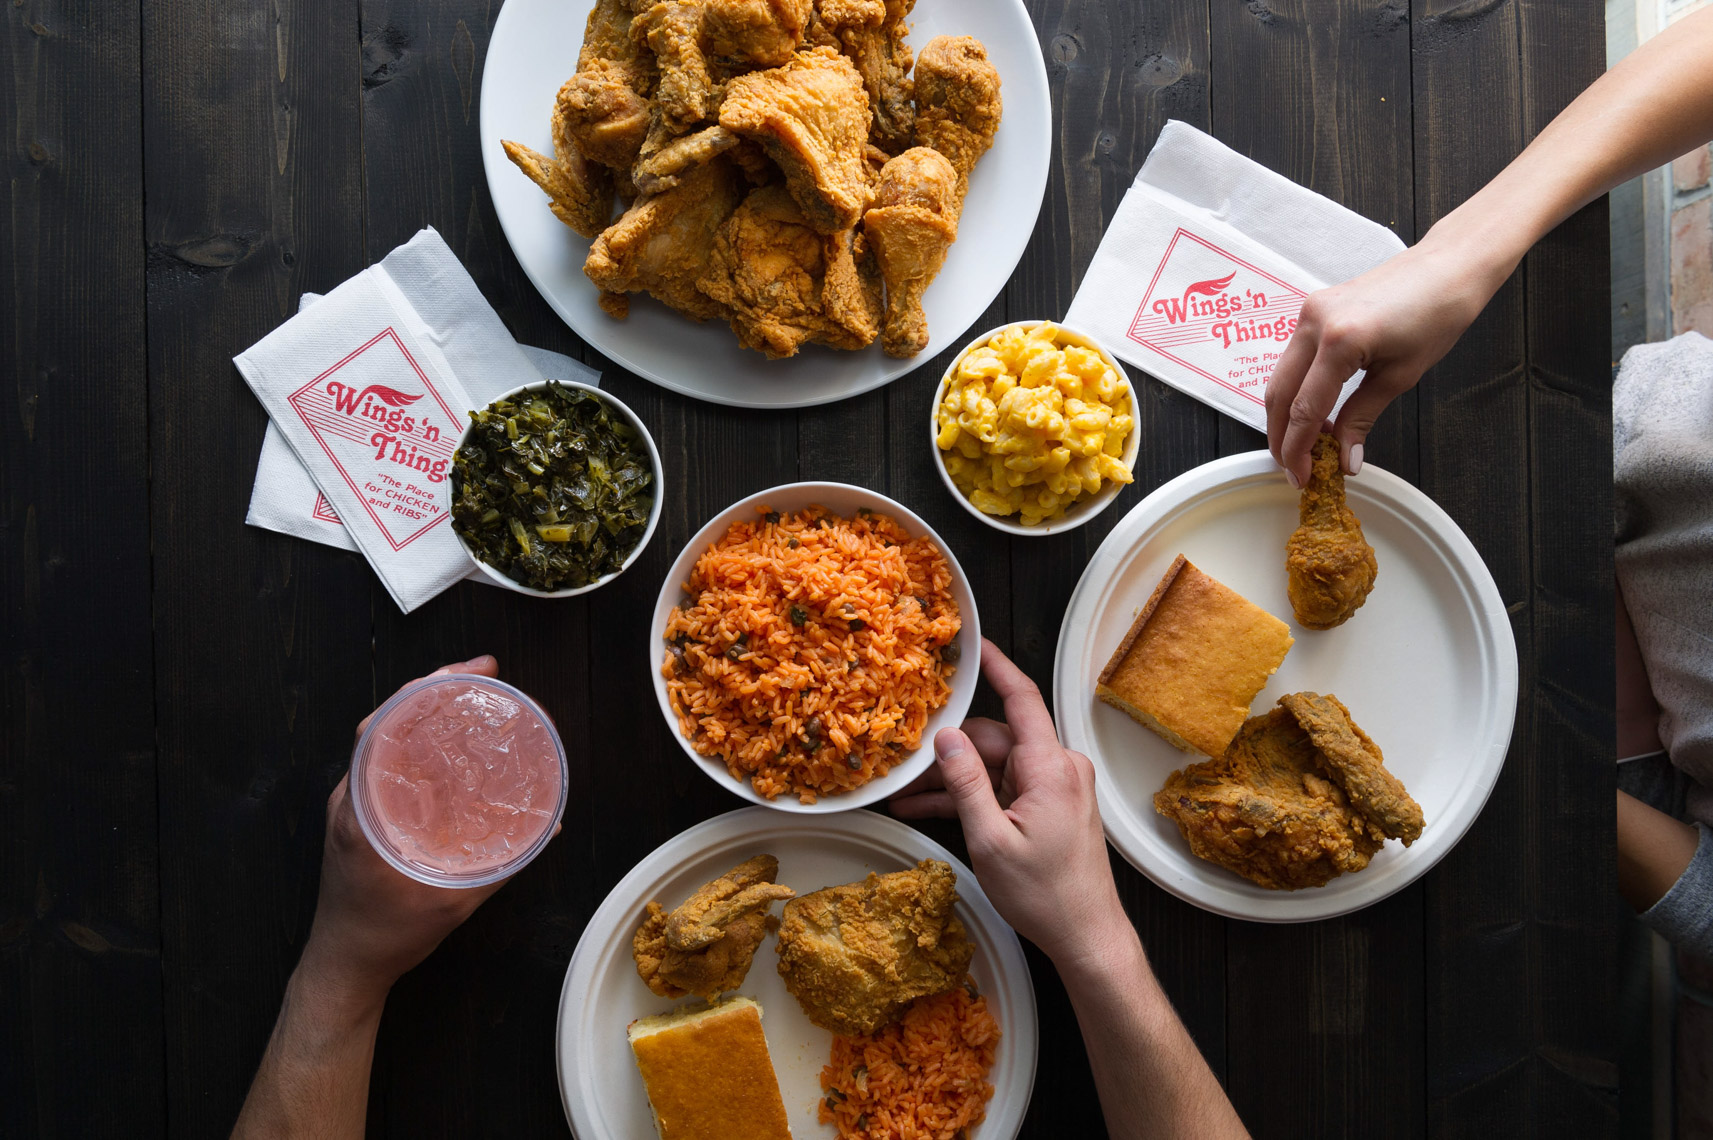 NYC Food Photographer – Fried Chicken and Sides